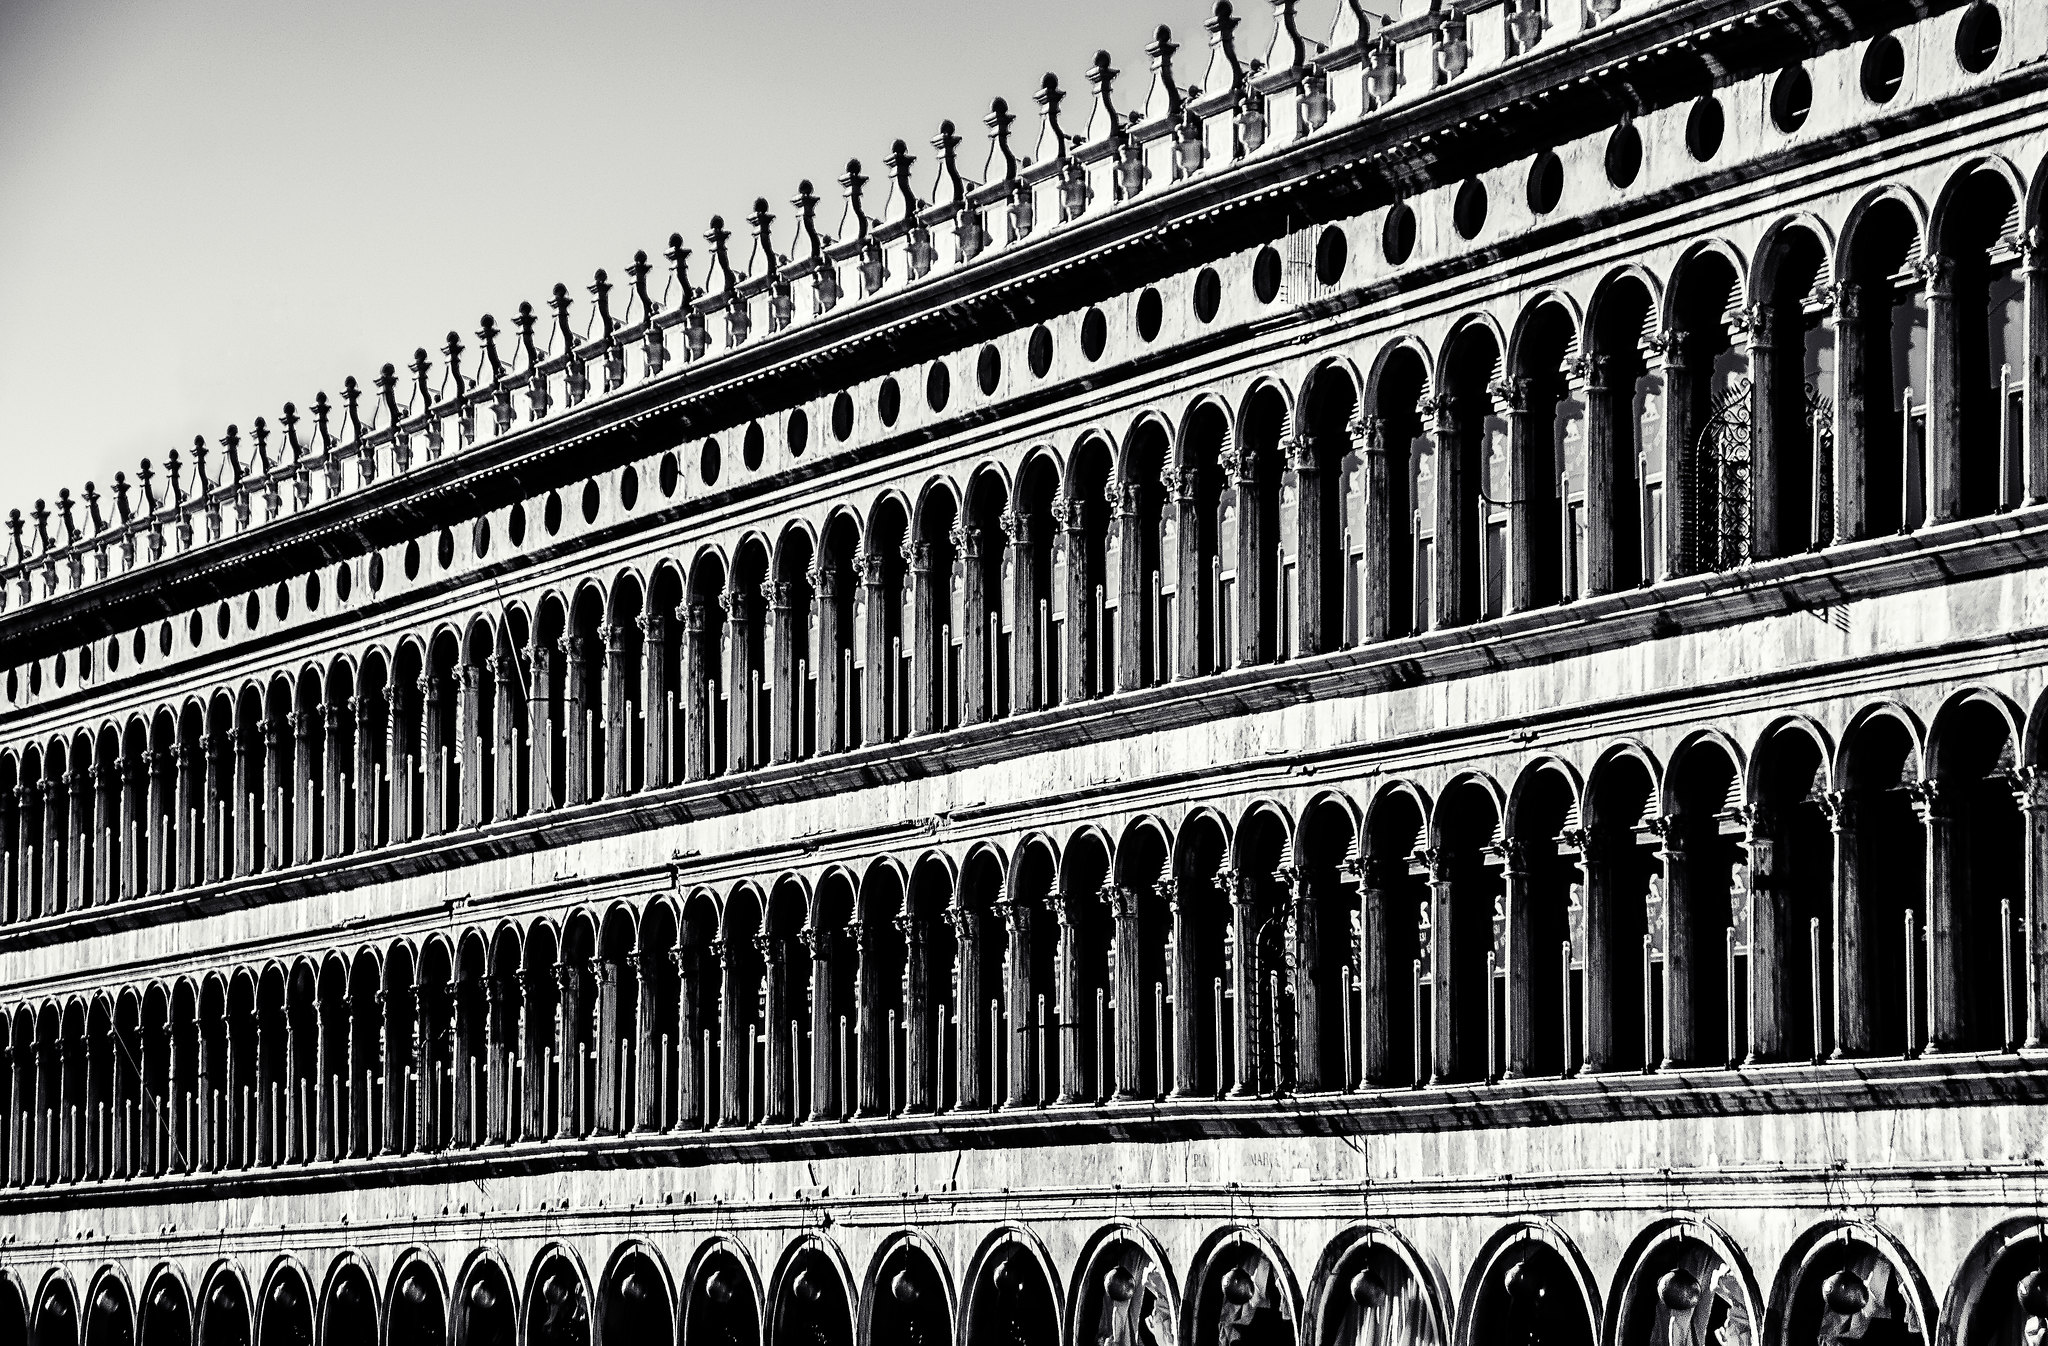 Repetition Architecture | Flickr - Photo Sharing!